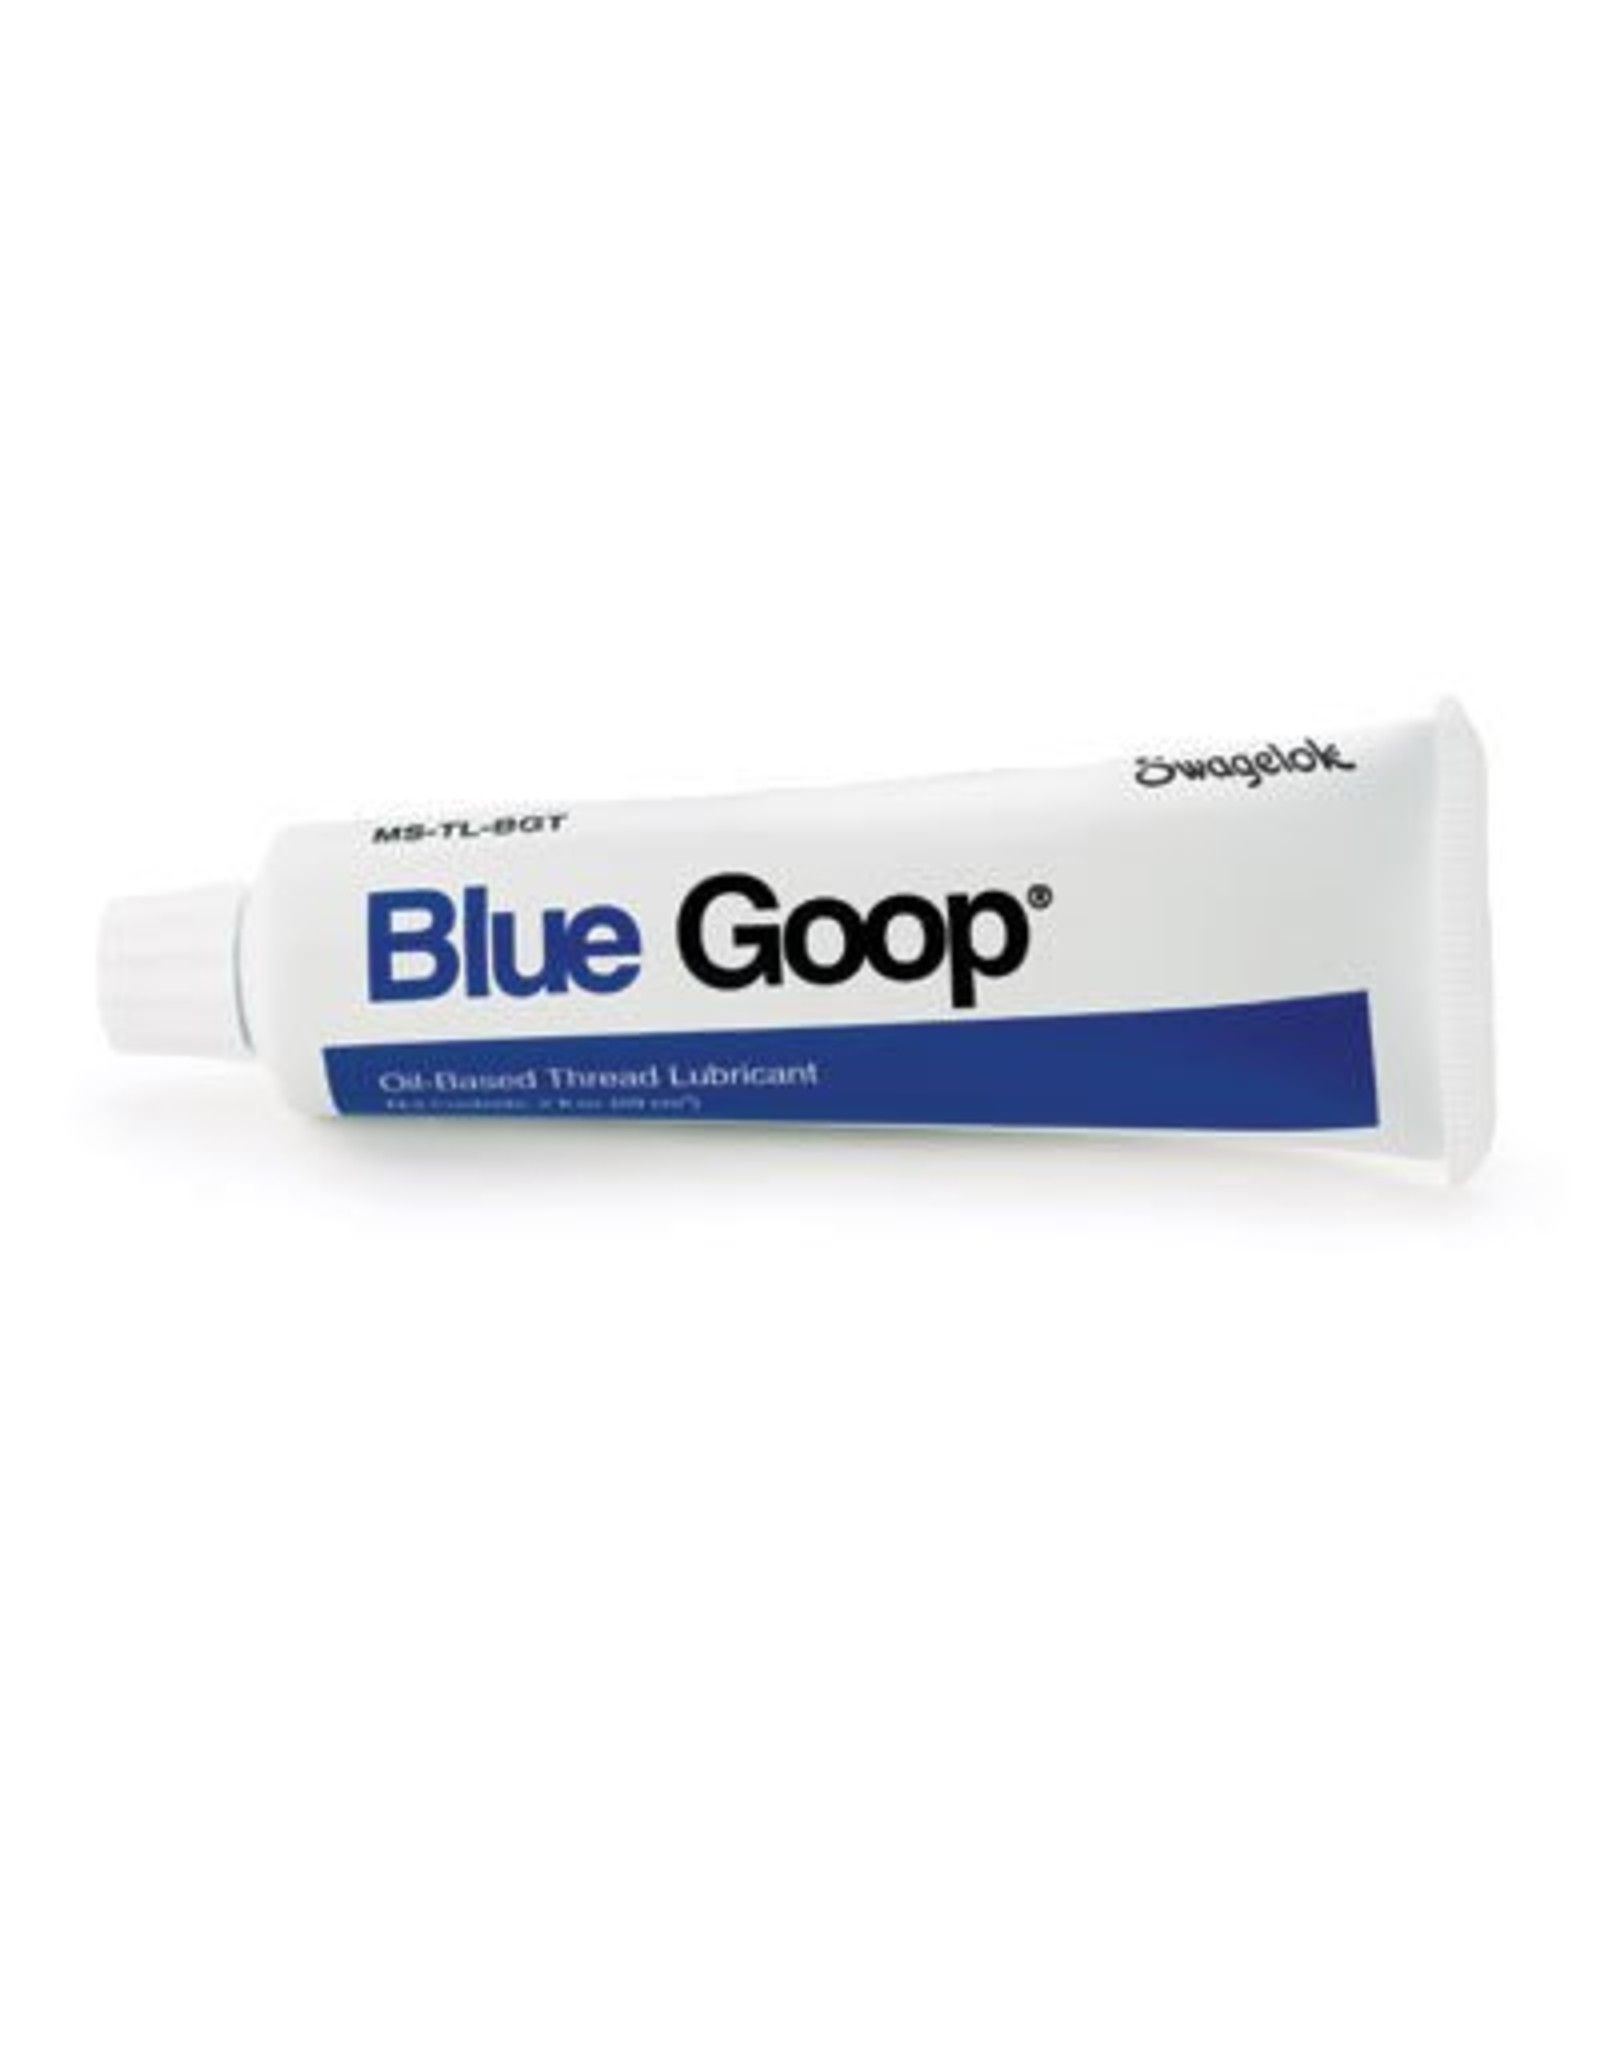 Swagelok Blue Goop, Anti Seizing for HP fittings